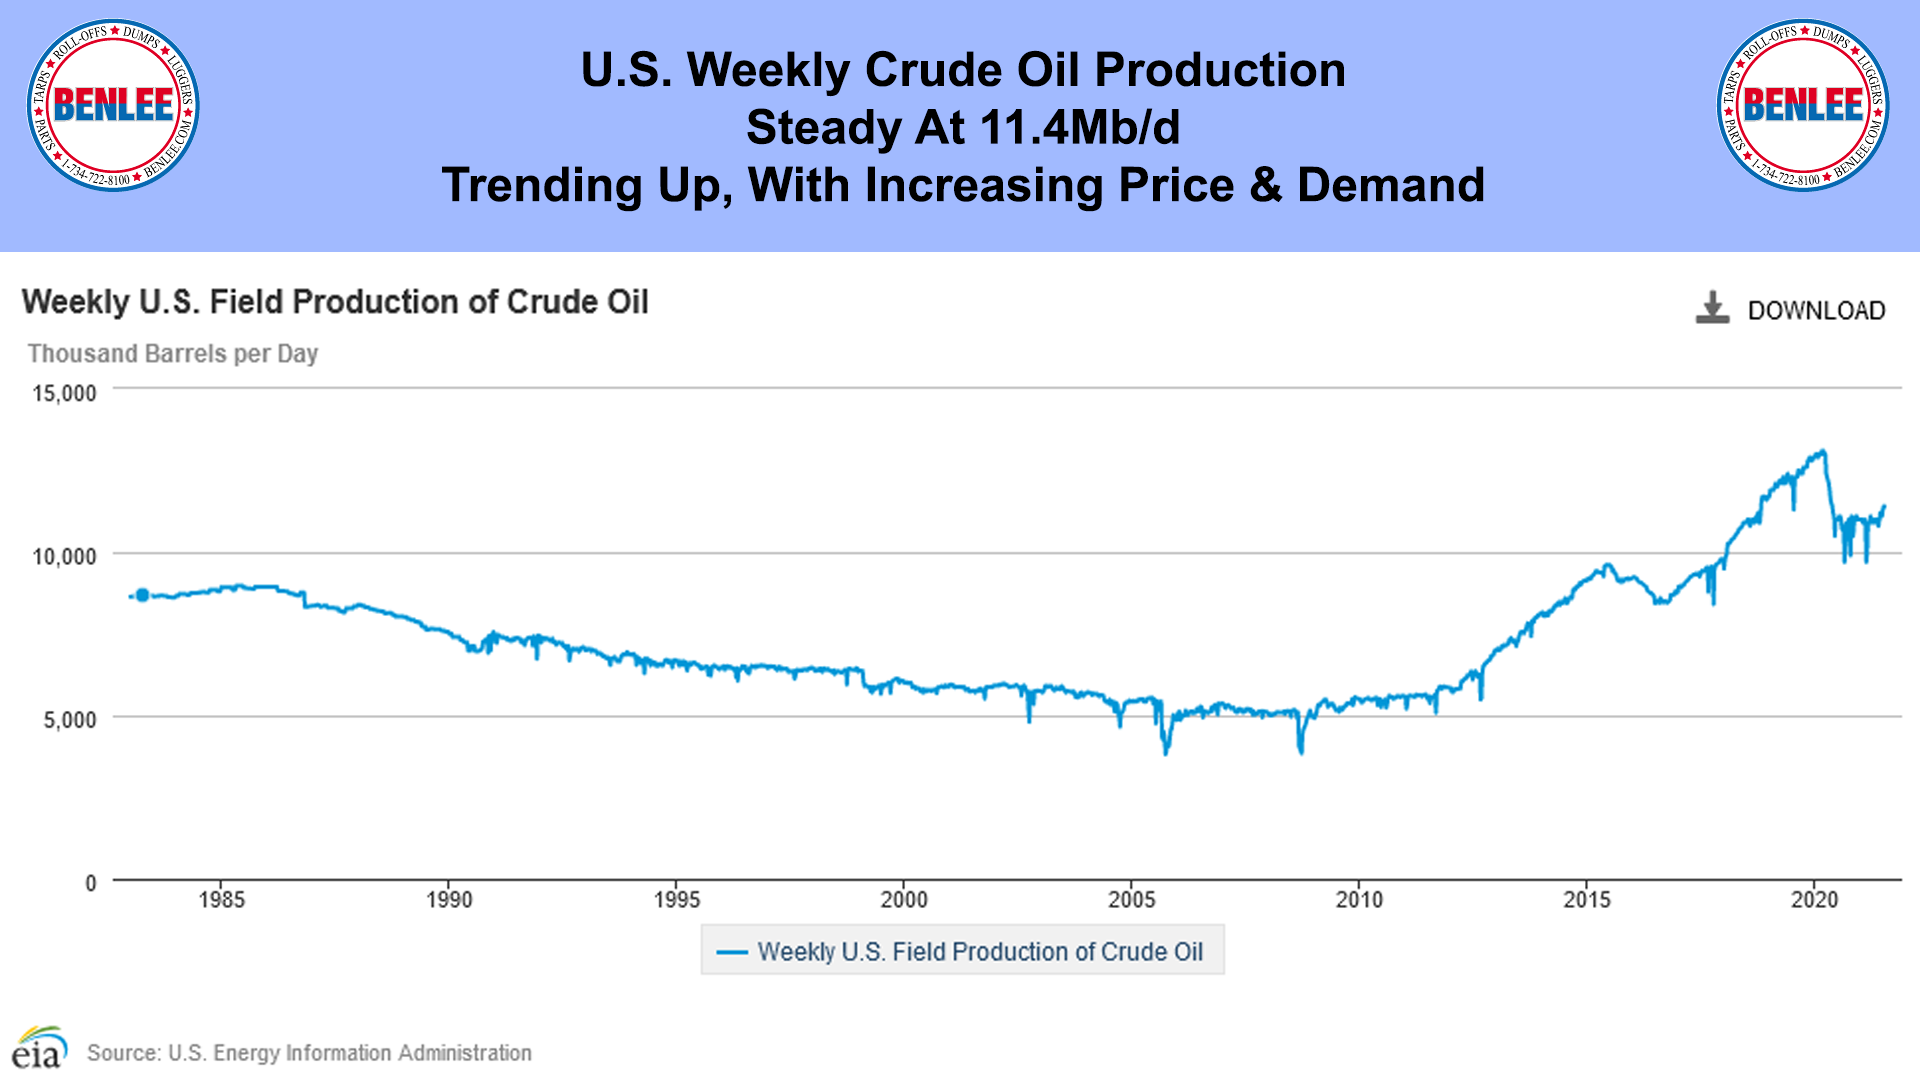 US Field Production of Crude Oil